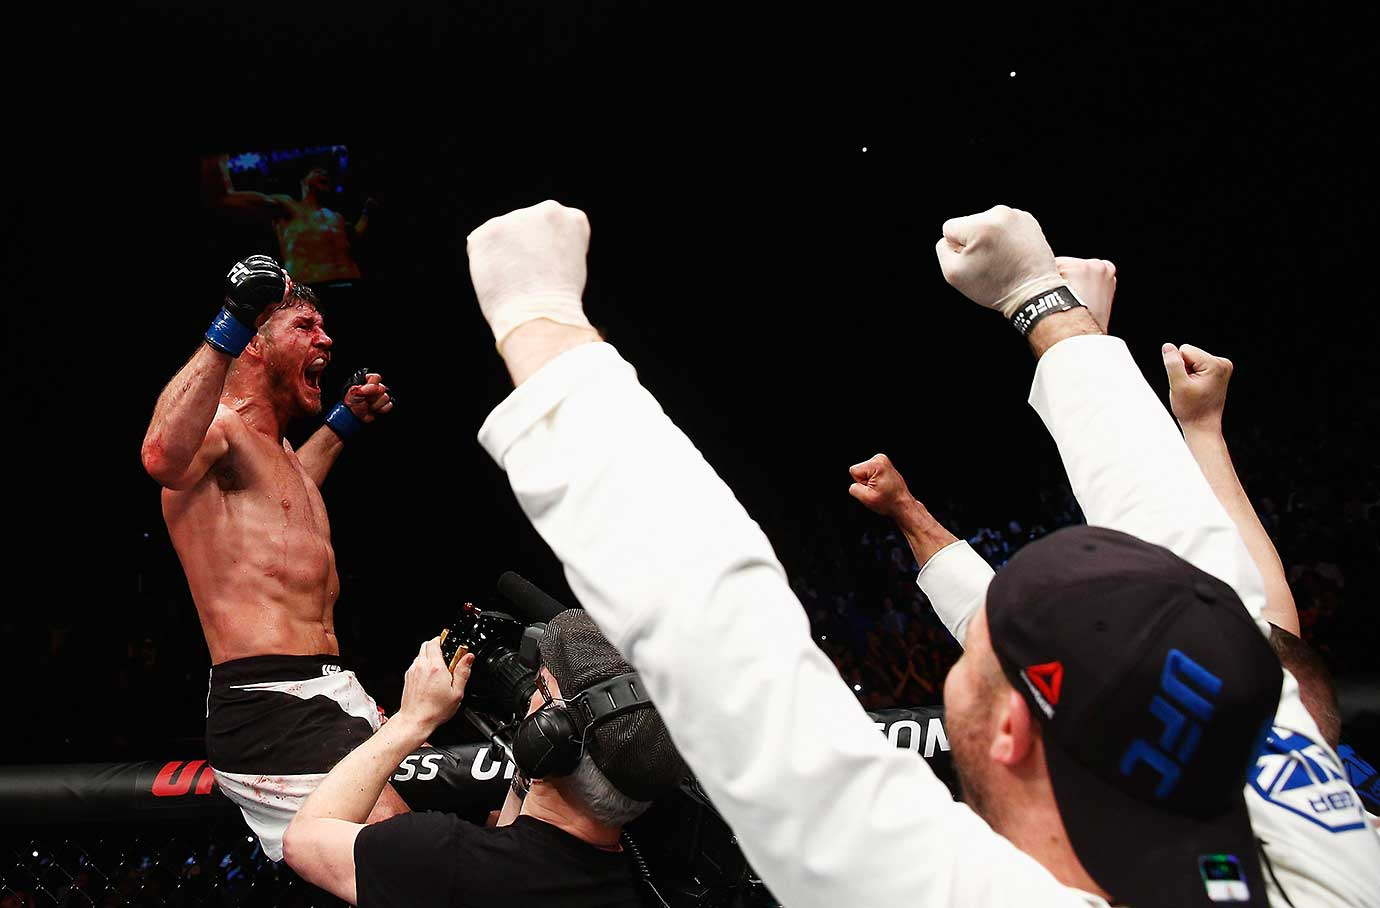 Michael Bisping celebrates after his win over Anderson Silva in their UFC middleweight bout in London.